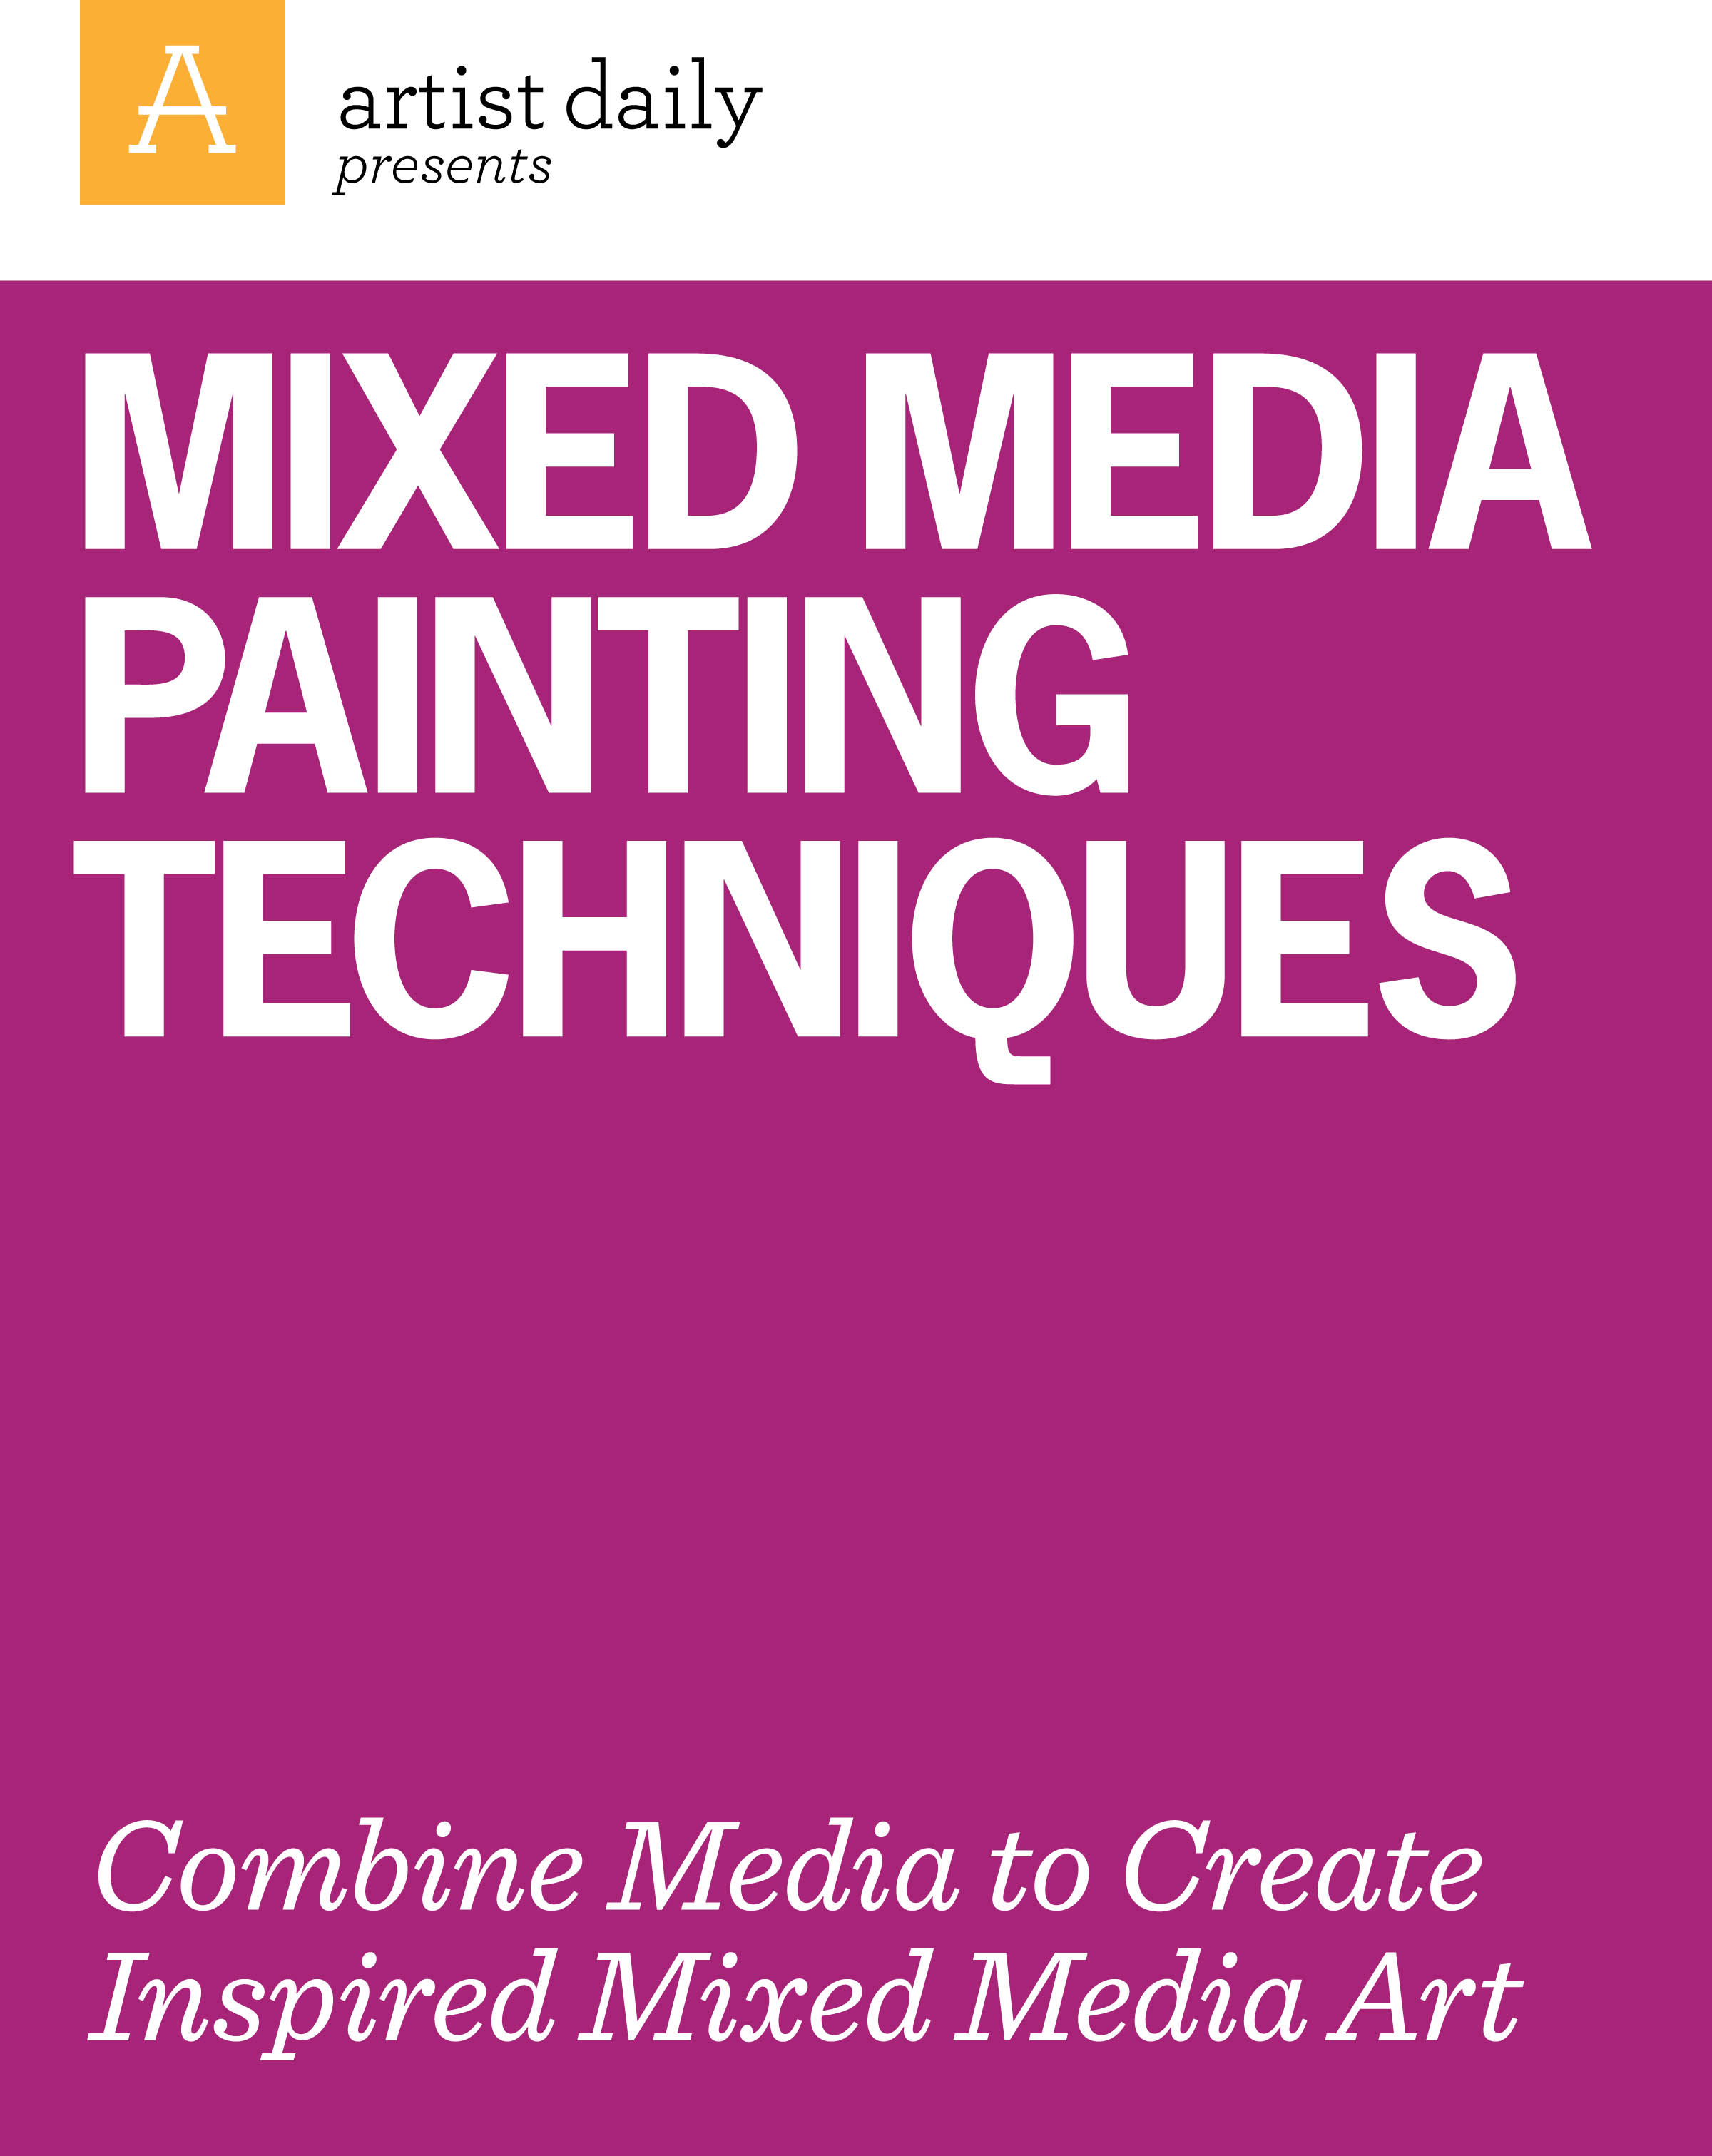 Download free mixed media painting techniques